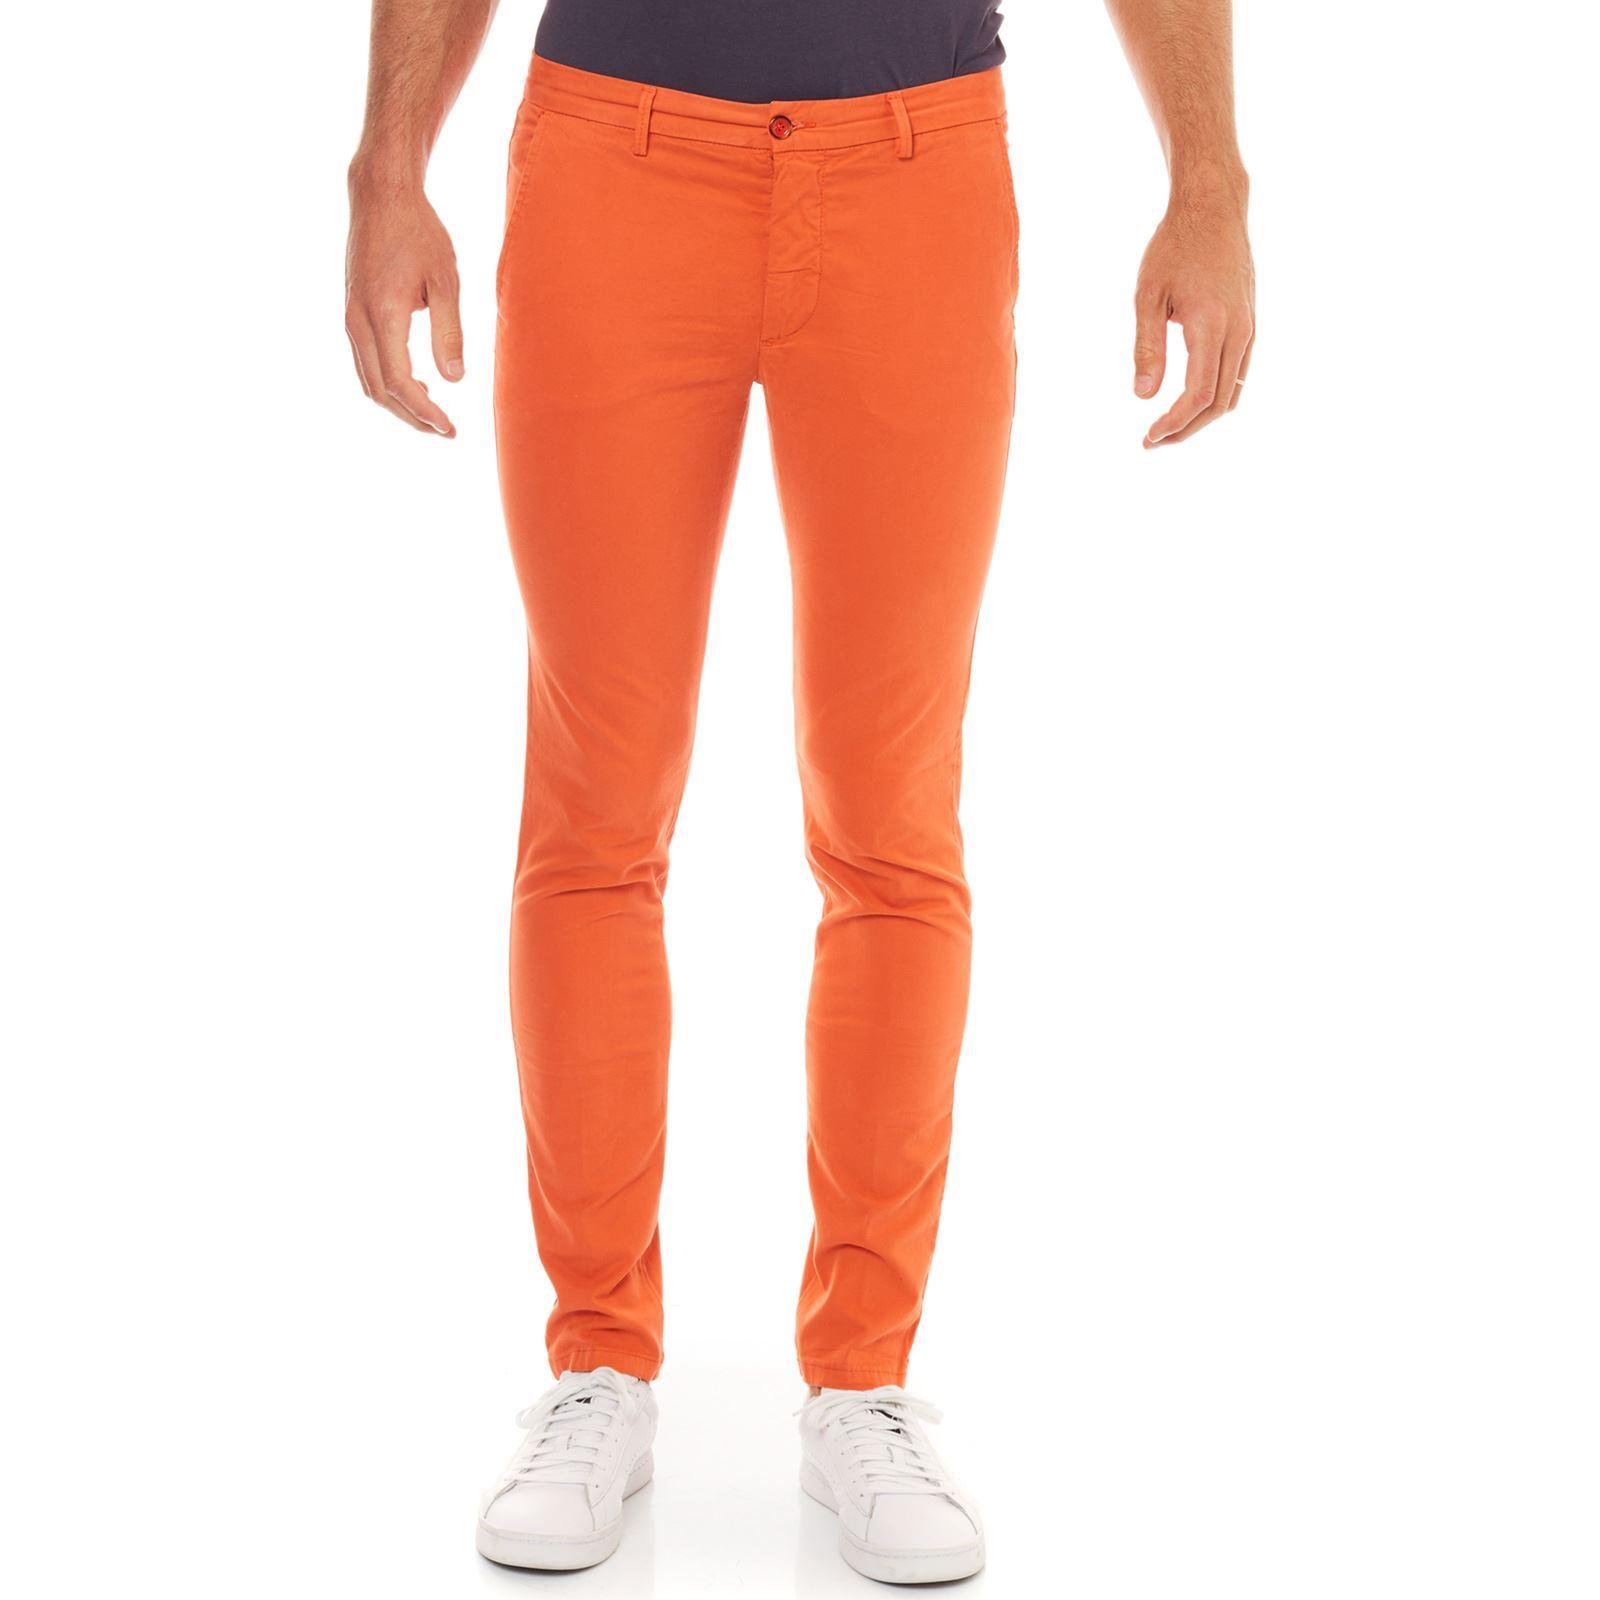 Benetton Pantalon Chino Orange Chino Benetton Pantalon Brandalley Orange  Rx1Sxq bedd34191bf